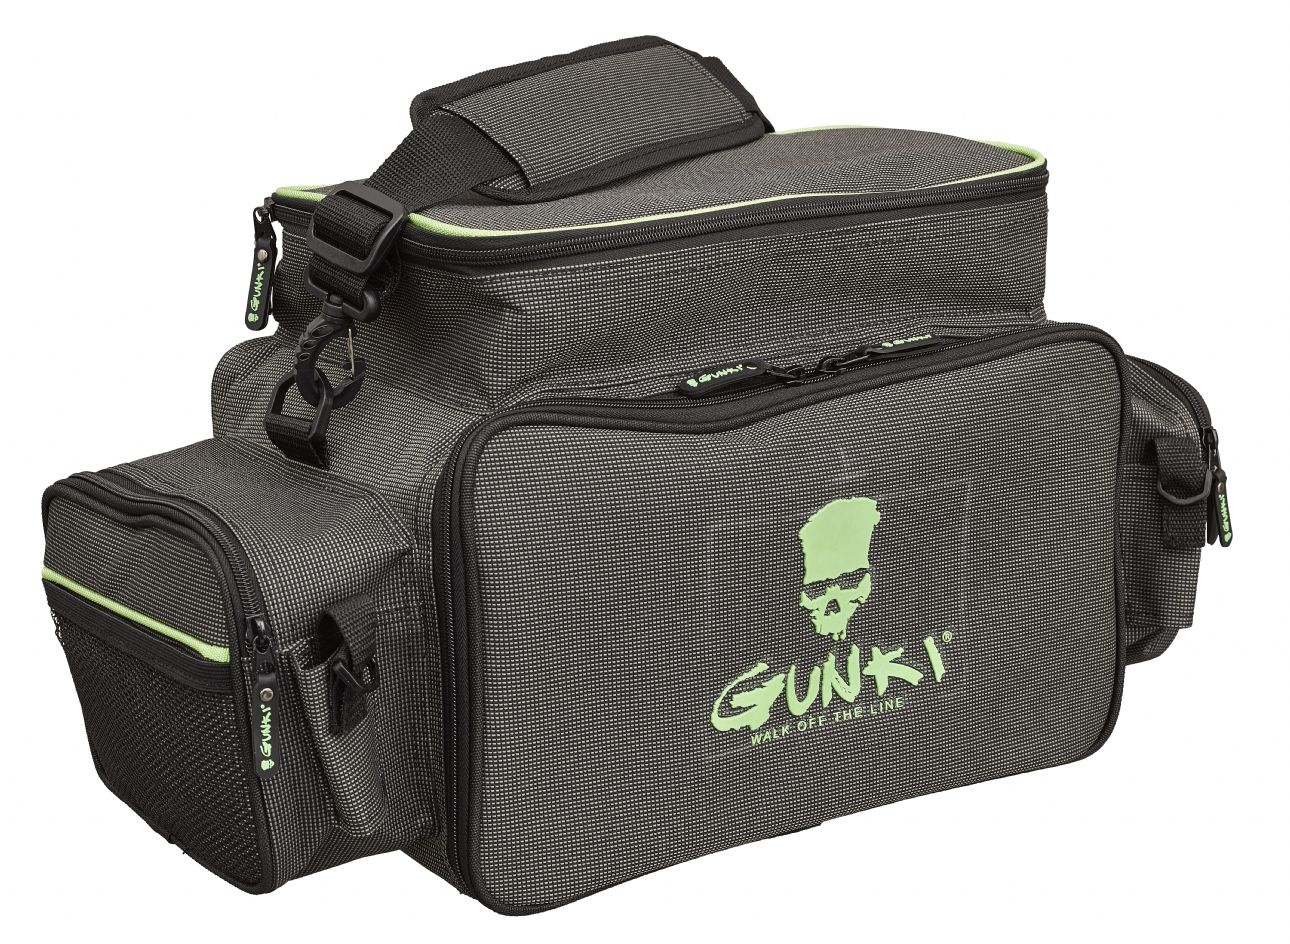 Gunki Iron-T Box Bag Front Pike Pro